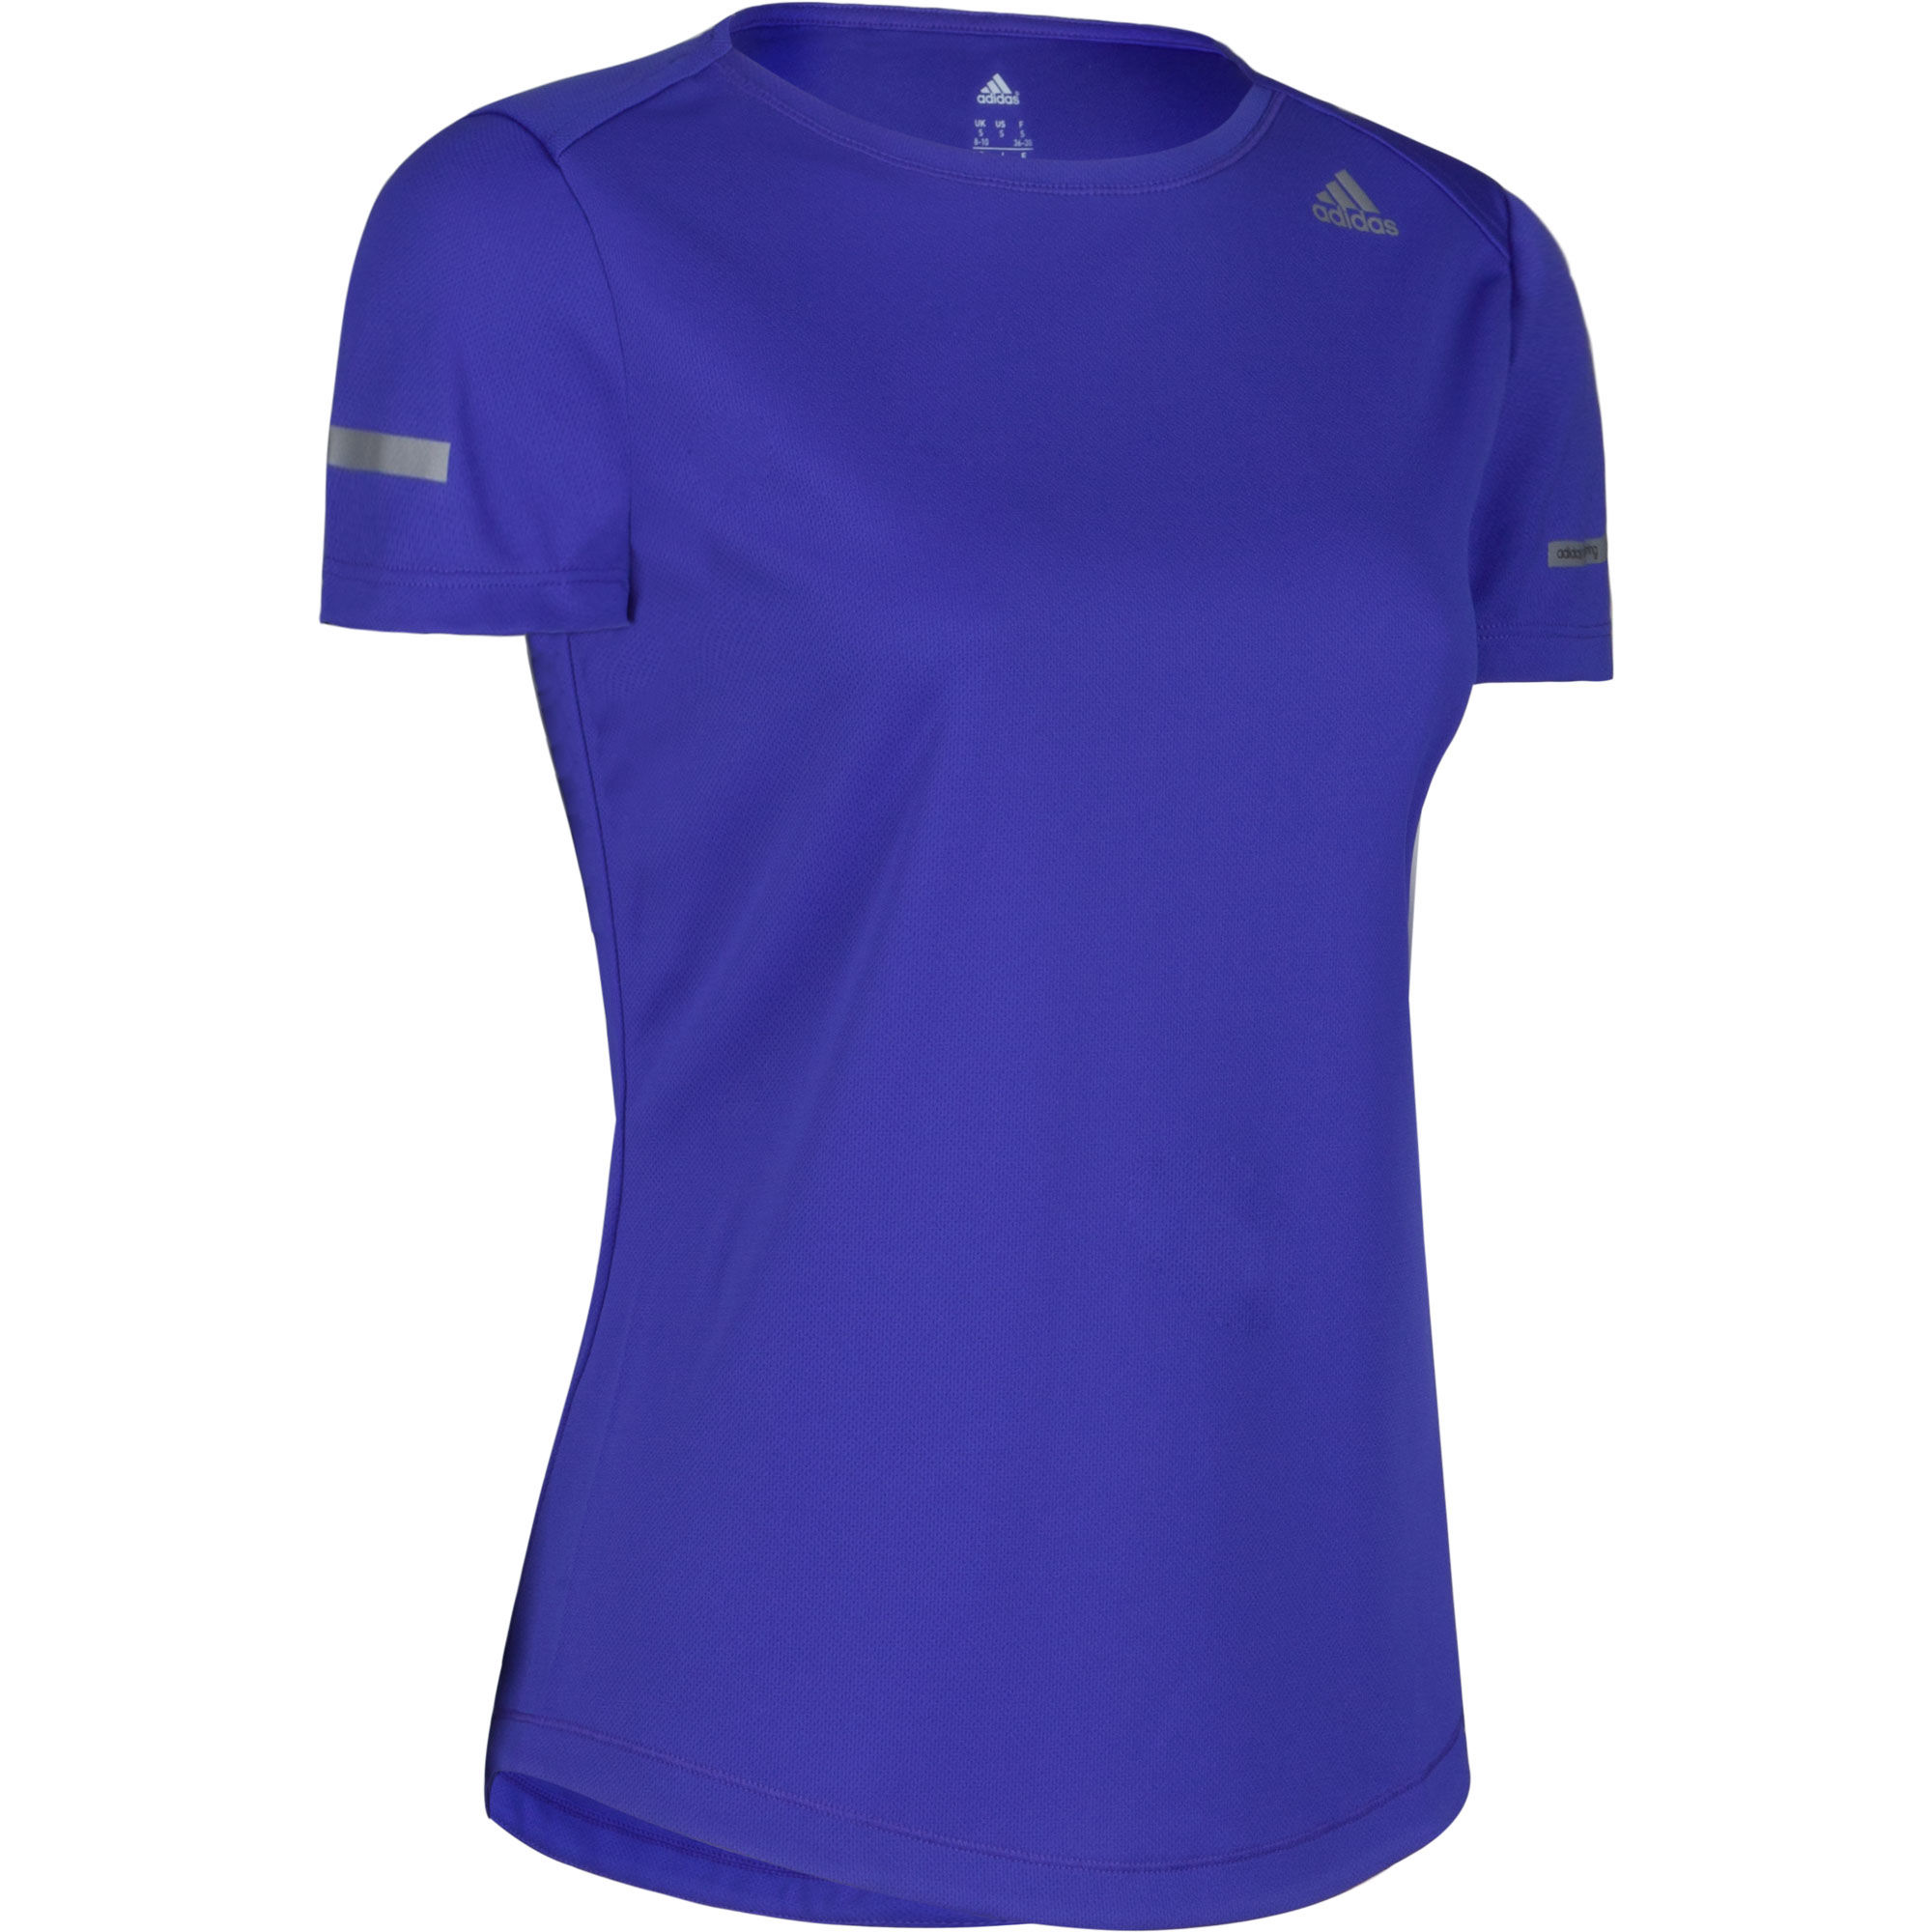 Wiggle adidas women 39 s run tee ss15 running short for Women s running shirts